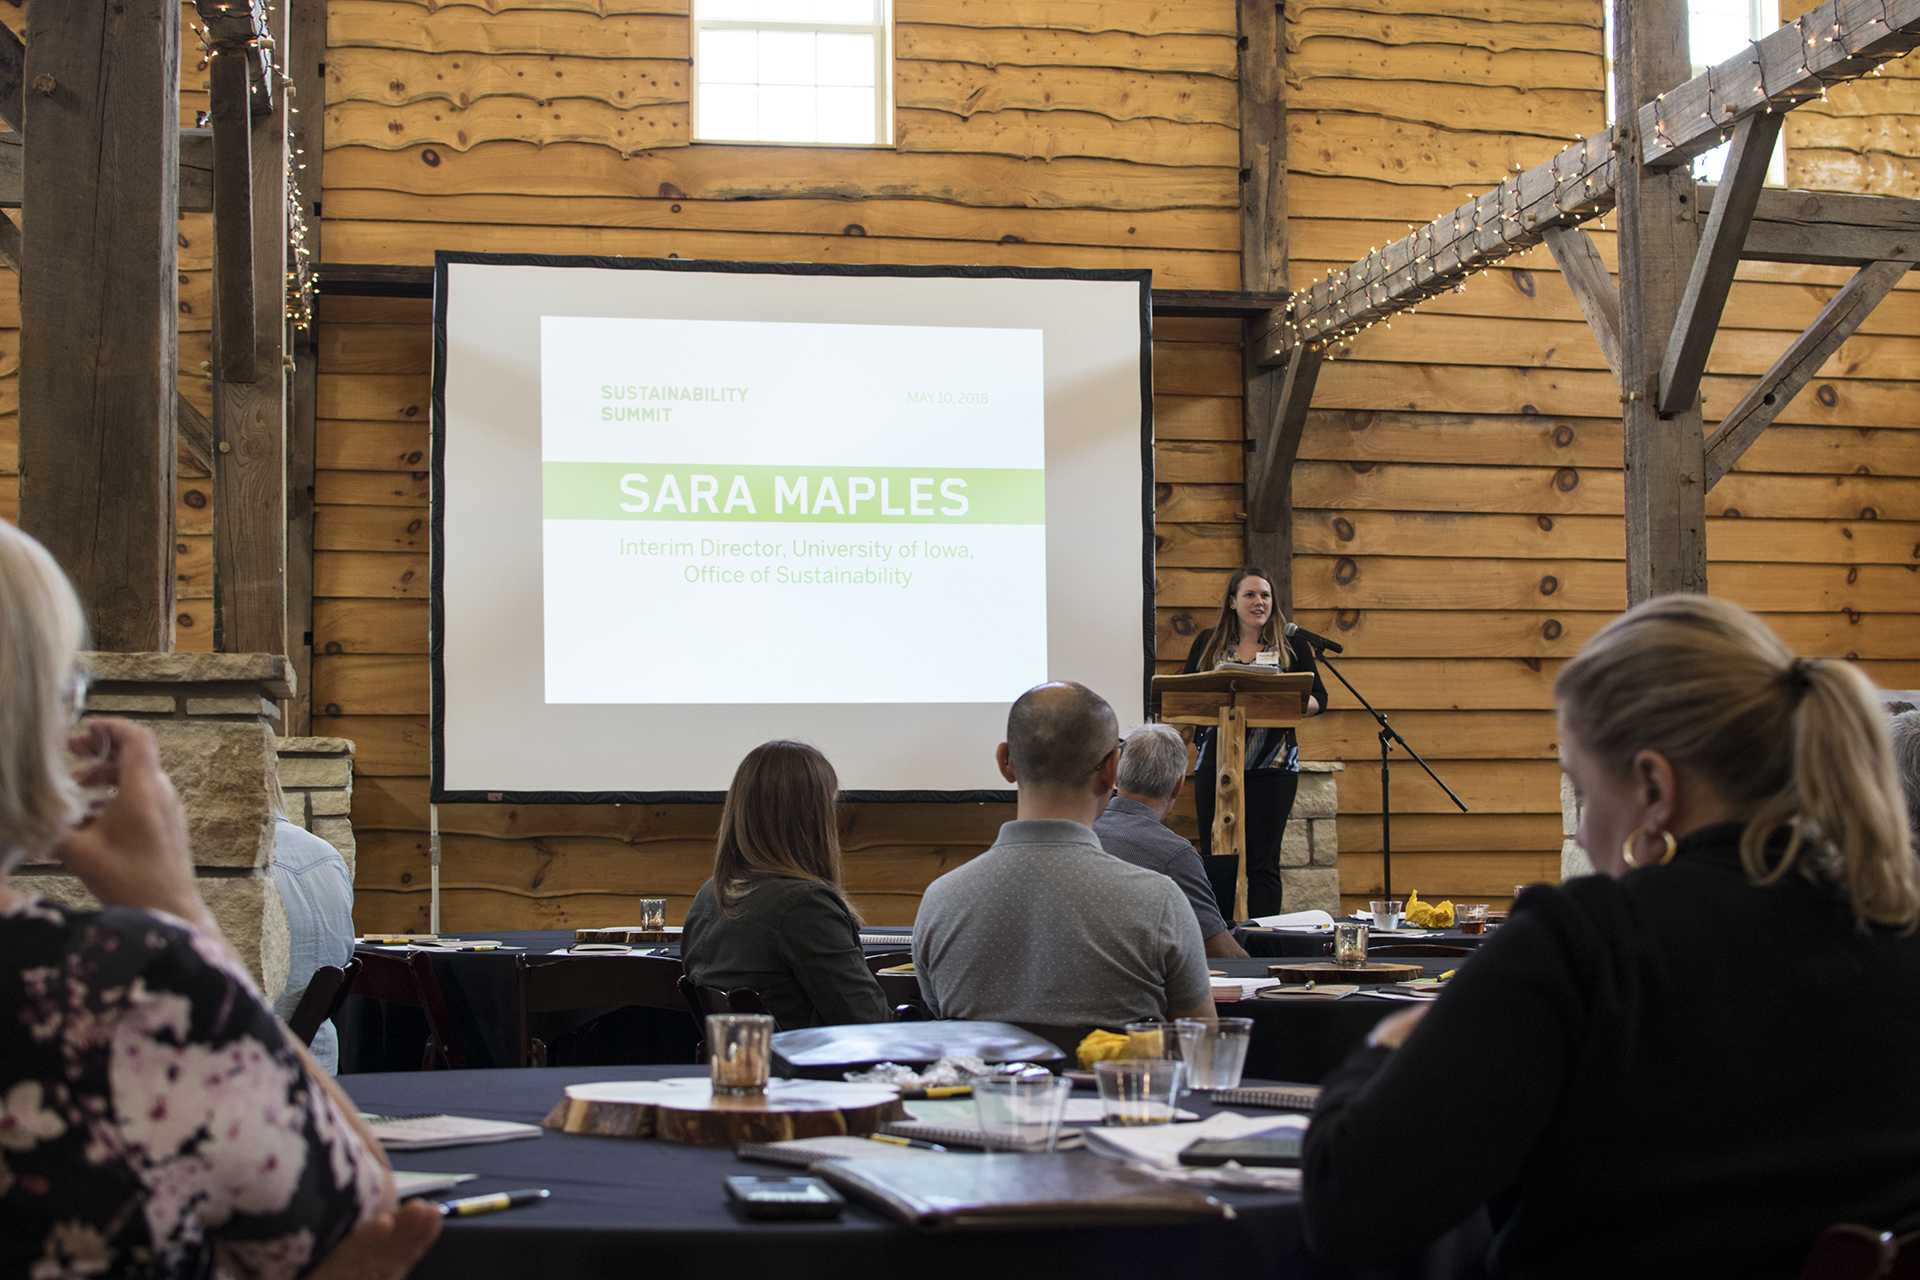 Faculty and companies collaborate over sustainability